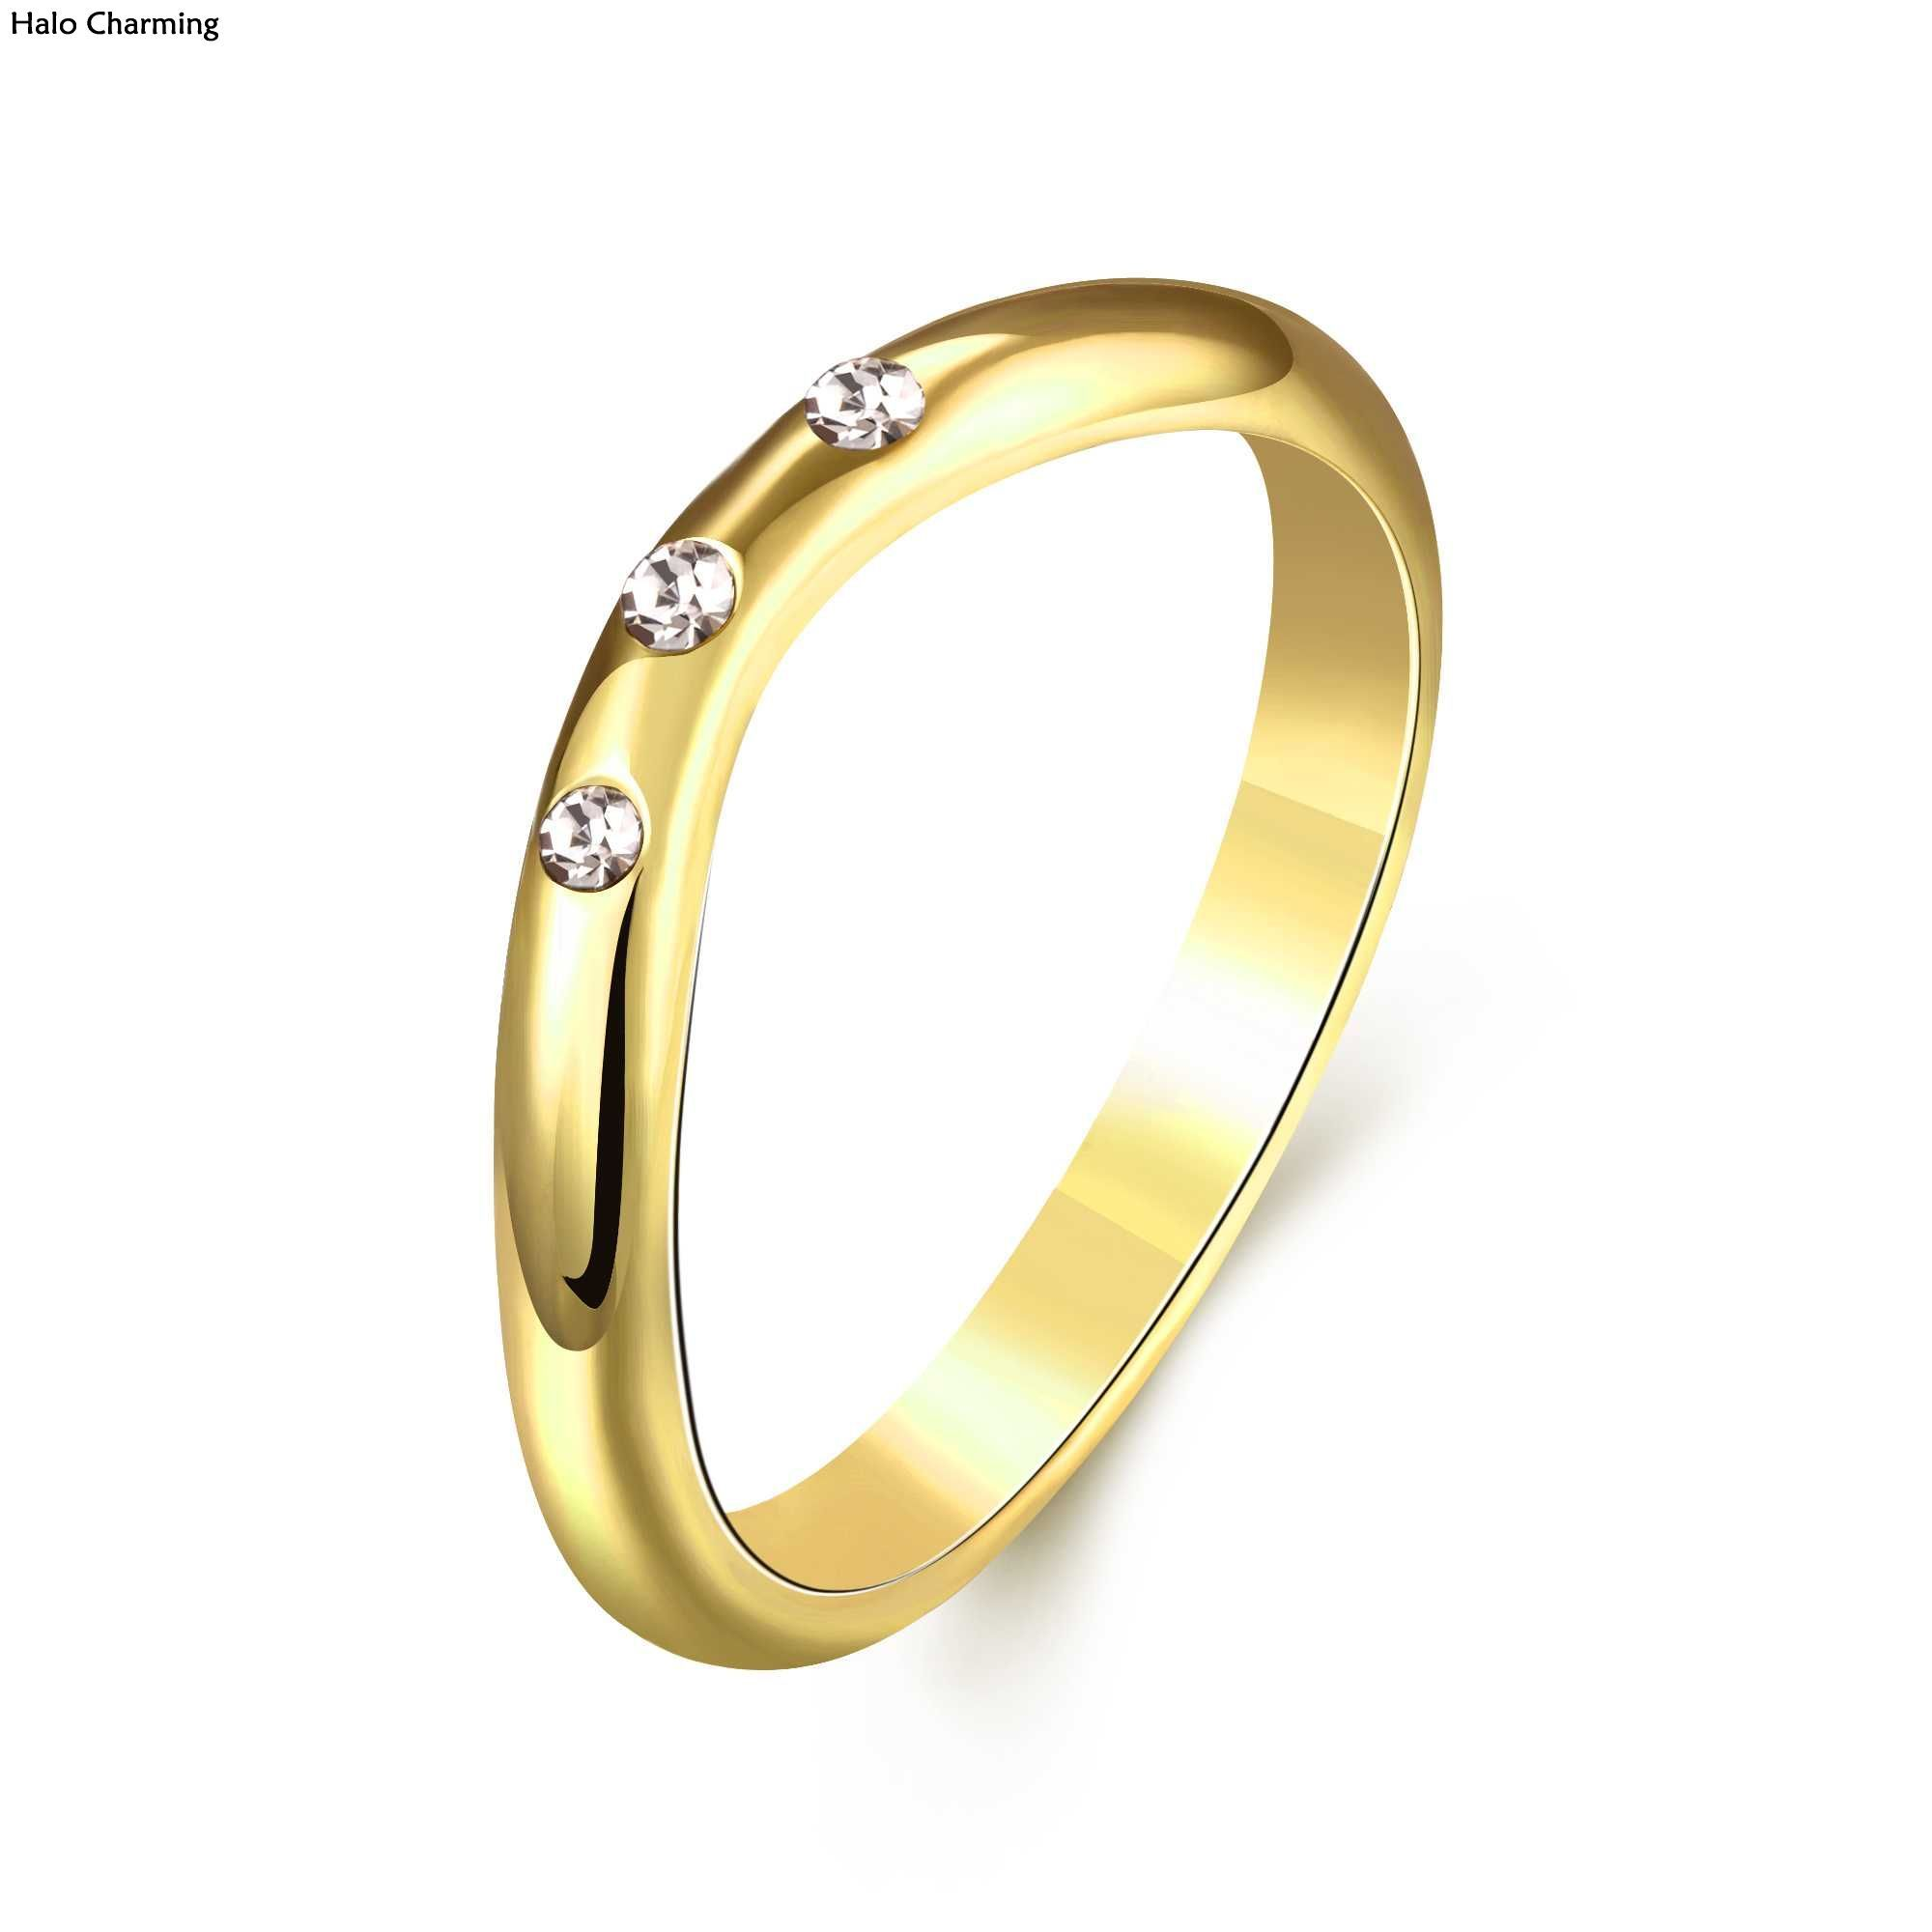 engagement hobbit for steel magic gift selling stainless white fashion product ring lord women jewellery the gold hot men rings of